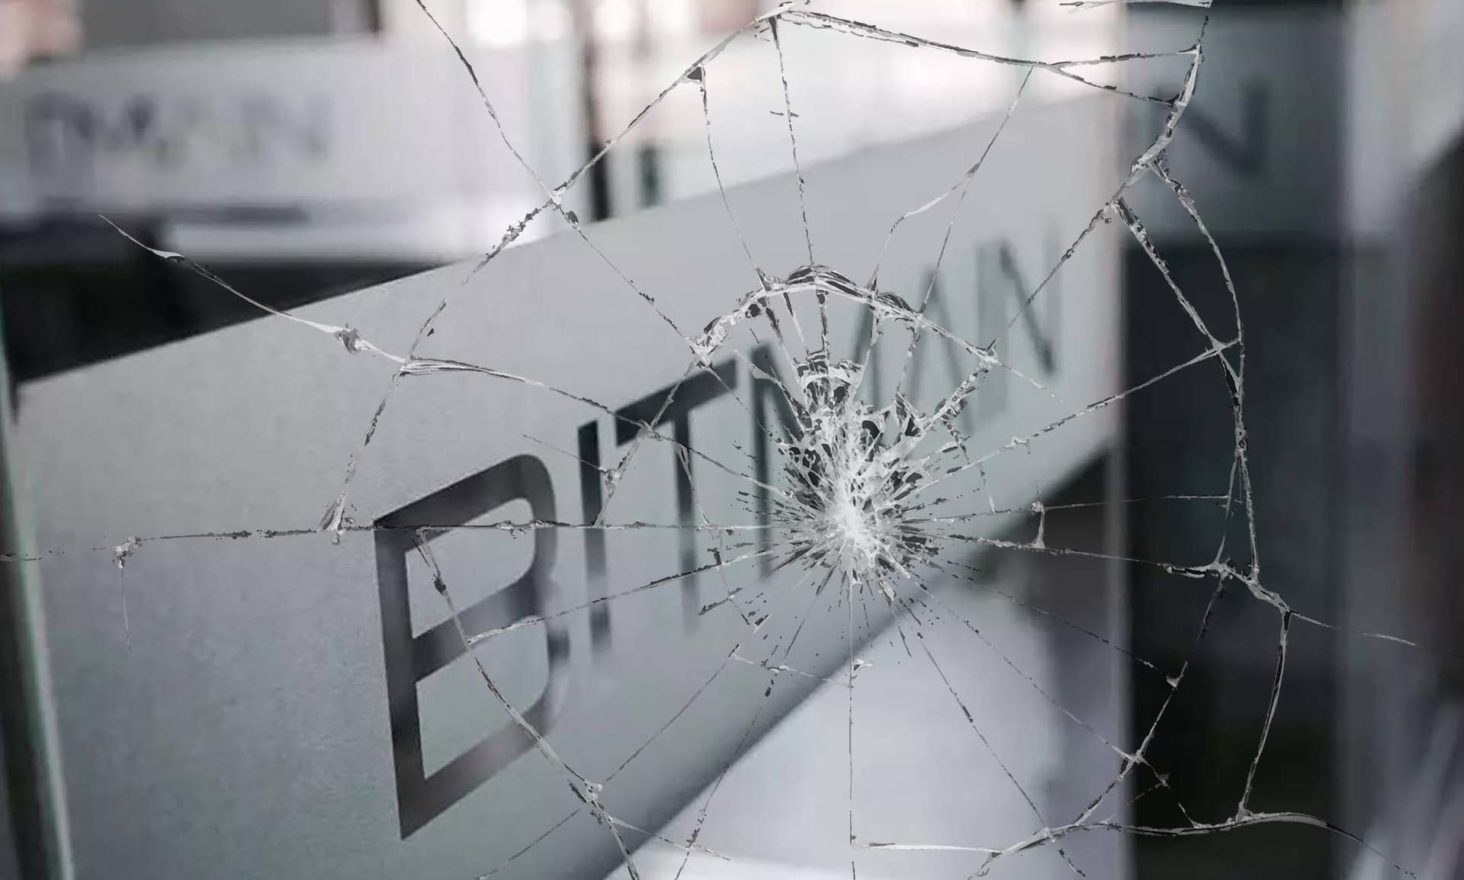 Halong's DragonMint Bitcoin Miner Set To Shatter Bitmains Mining Monopoly